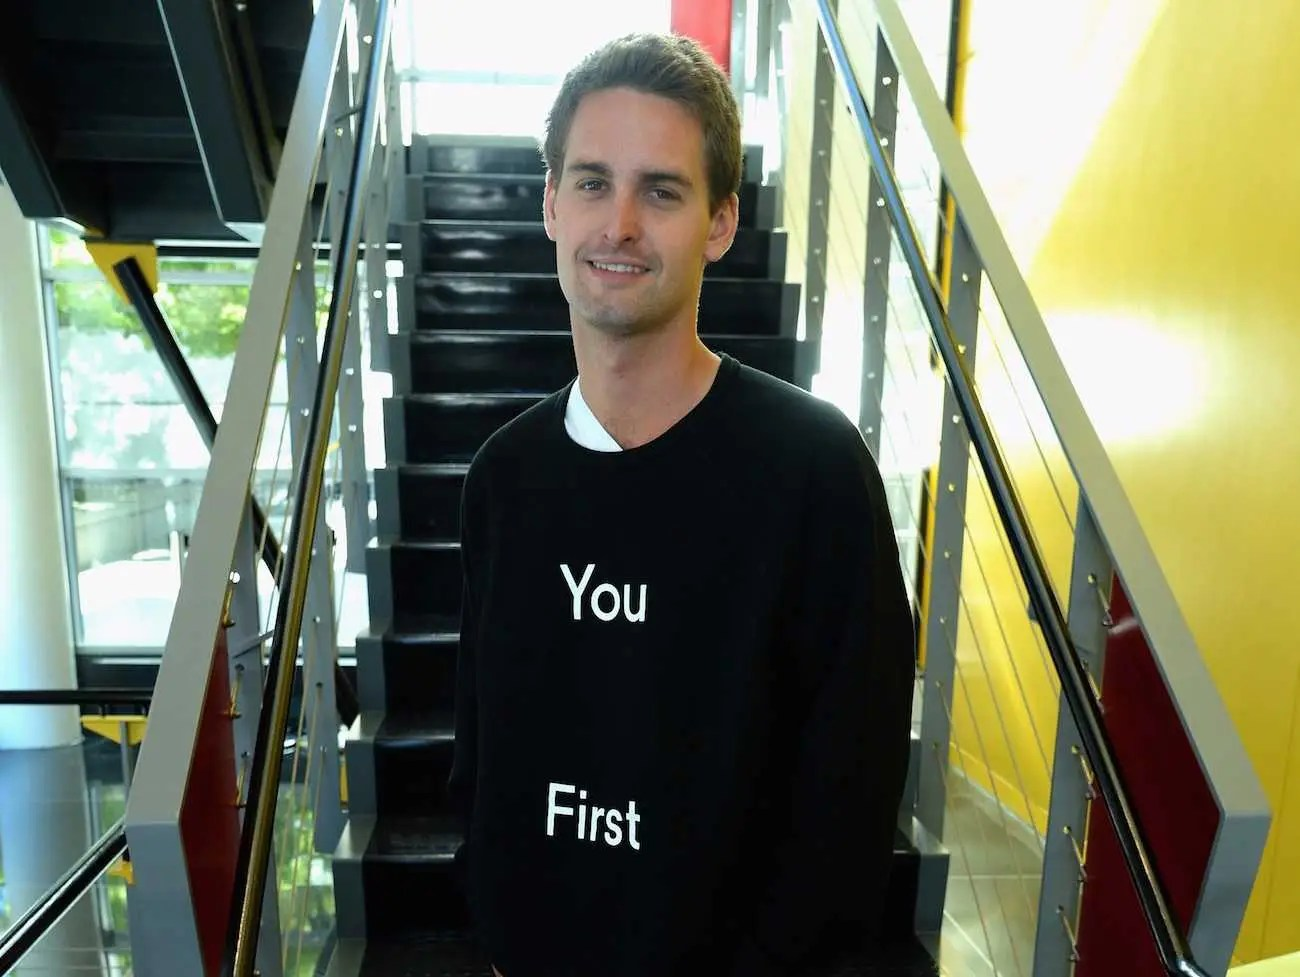 Spiegel 24 Snapchat Ceo Evan Spiegel Will Appear On Season Two Of Hbo S